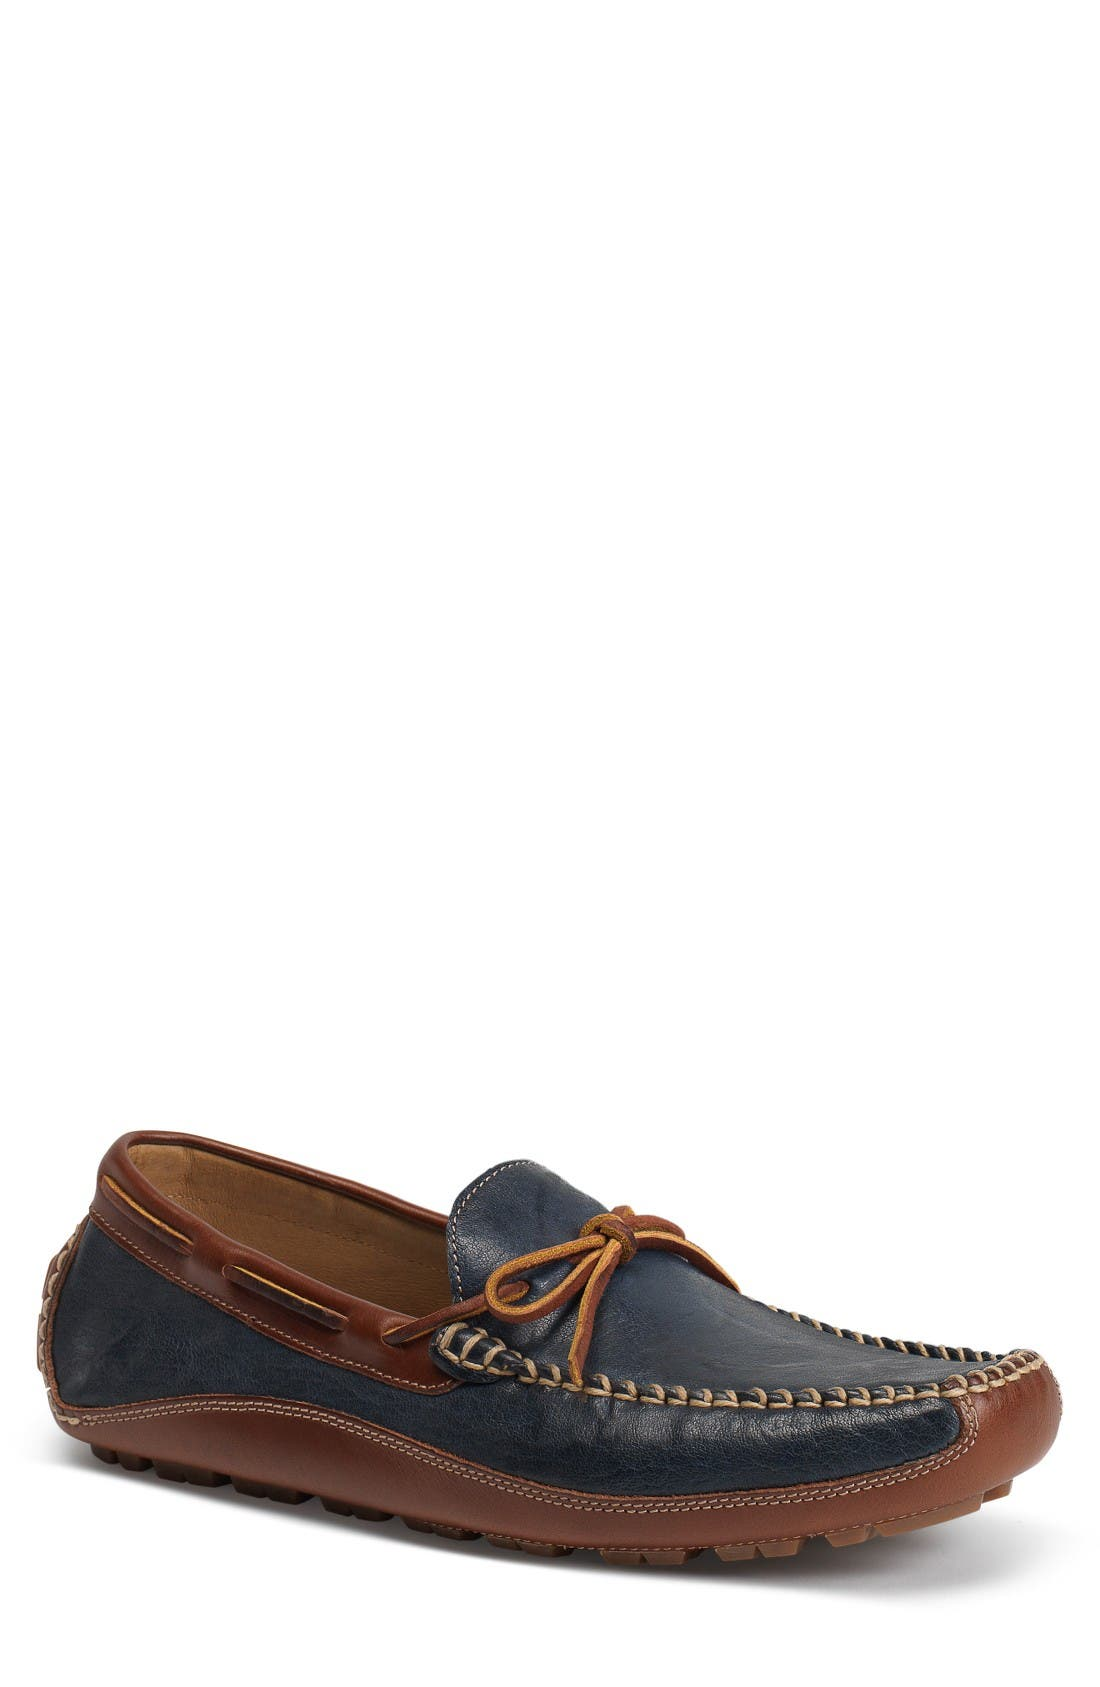 'Drake' Leather Driving Shoe,                         Main,                         color, Dark Navy Leather